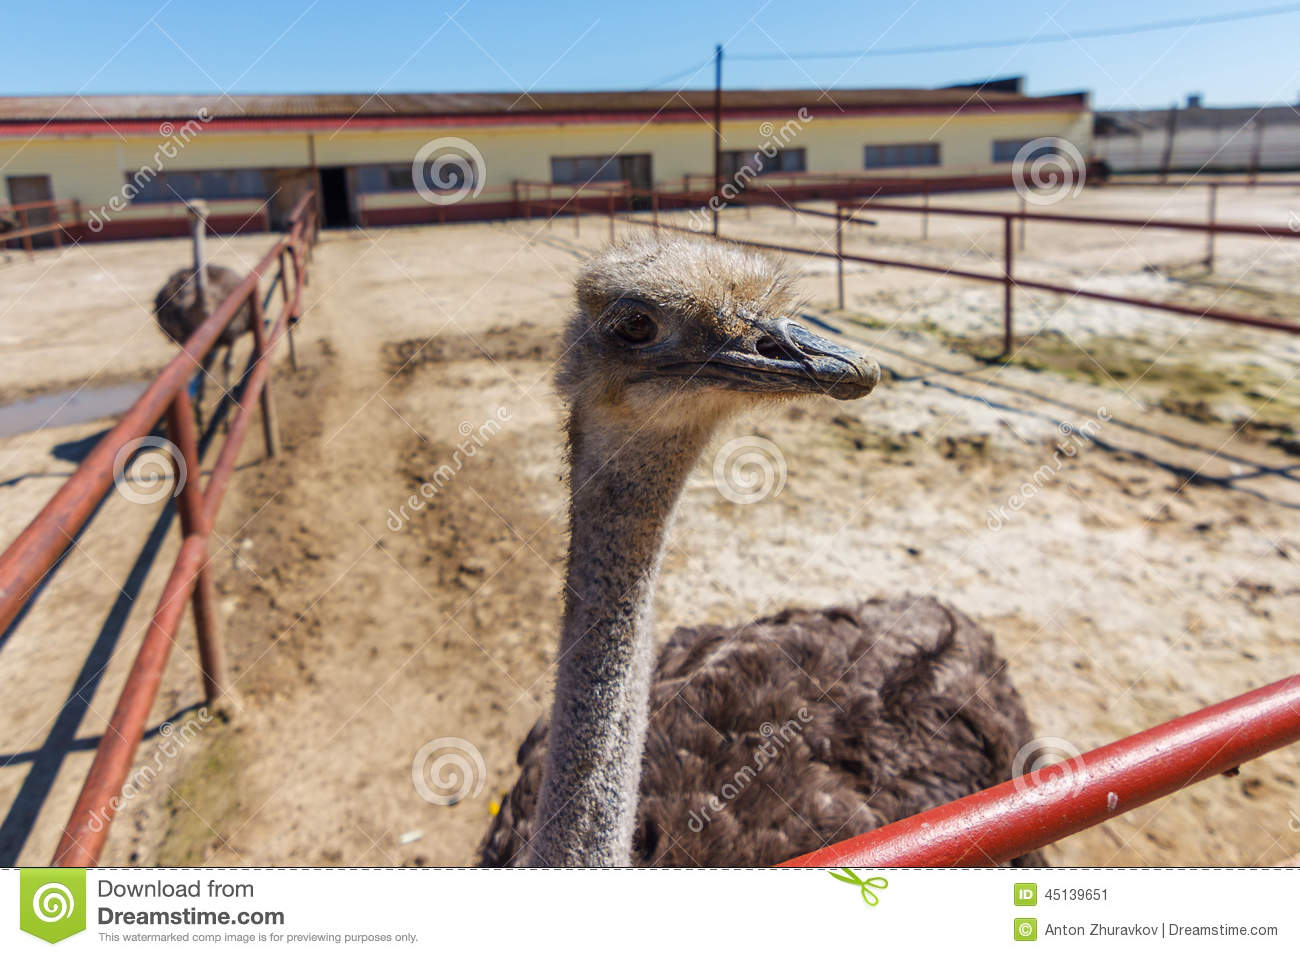 How to Start Ostrich Farming in Pakistan | Complete Business Plan